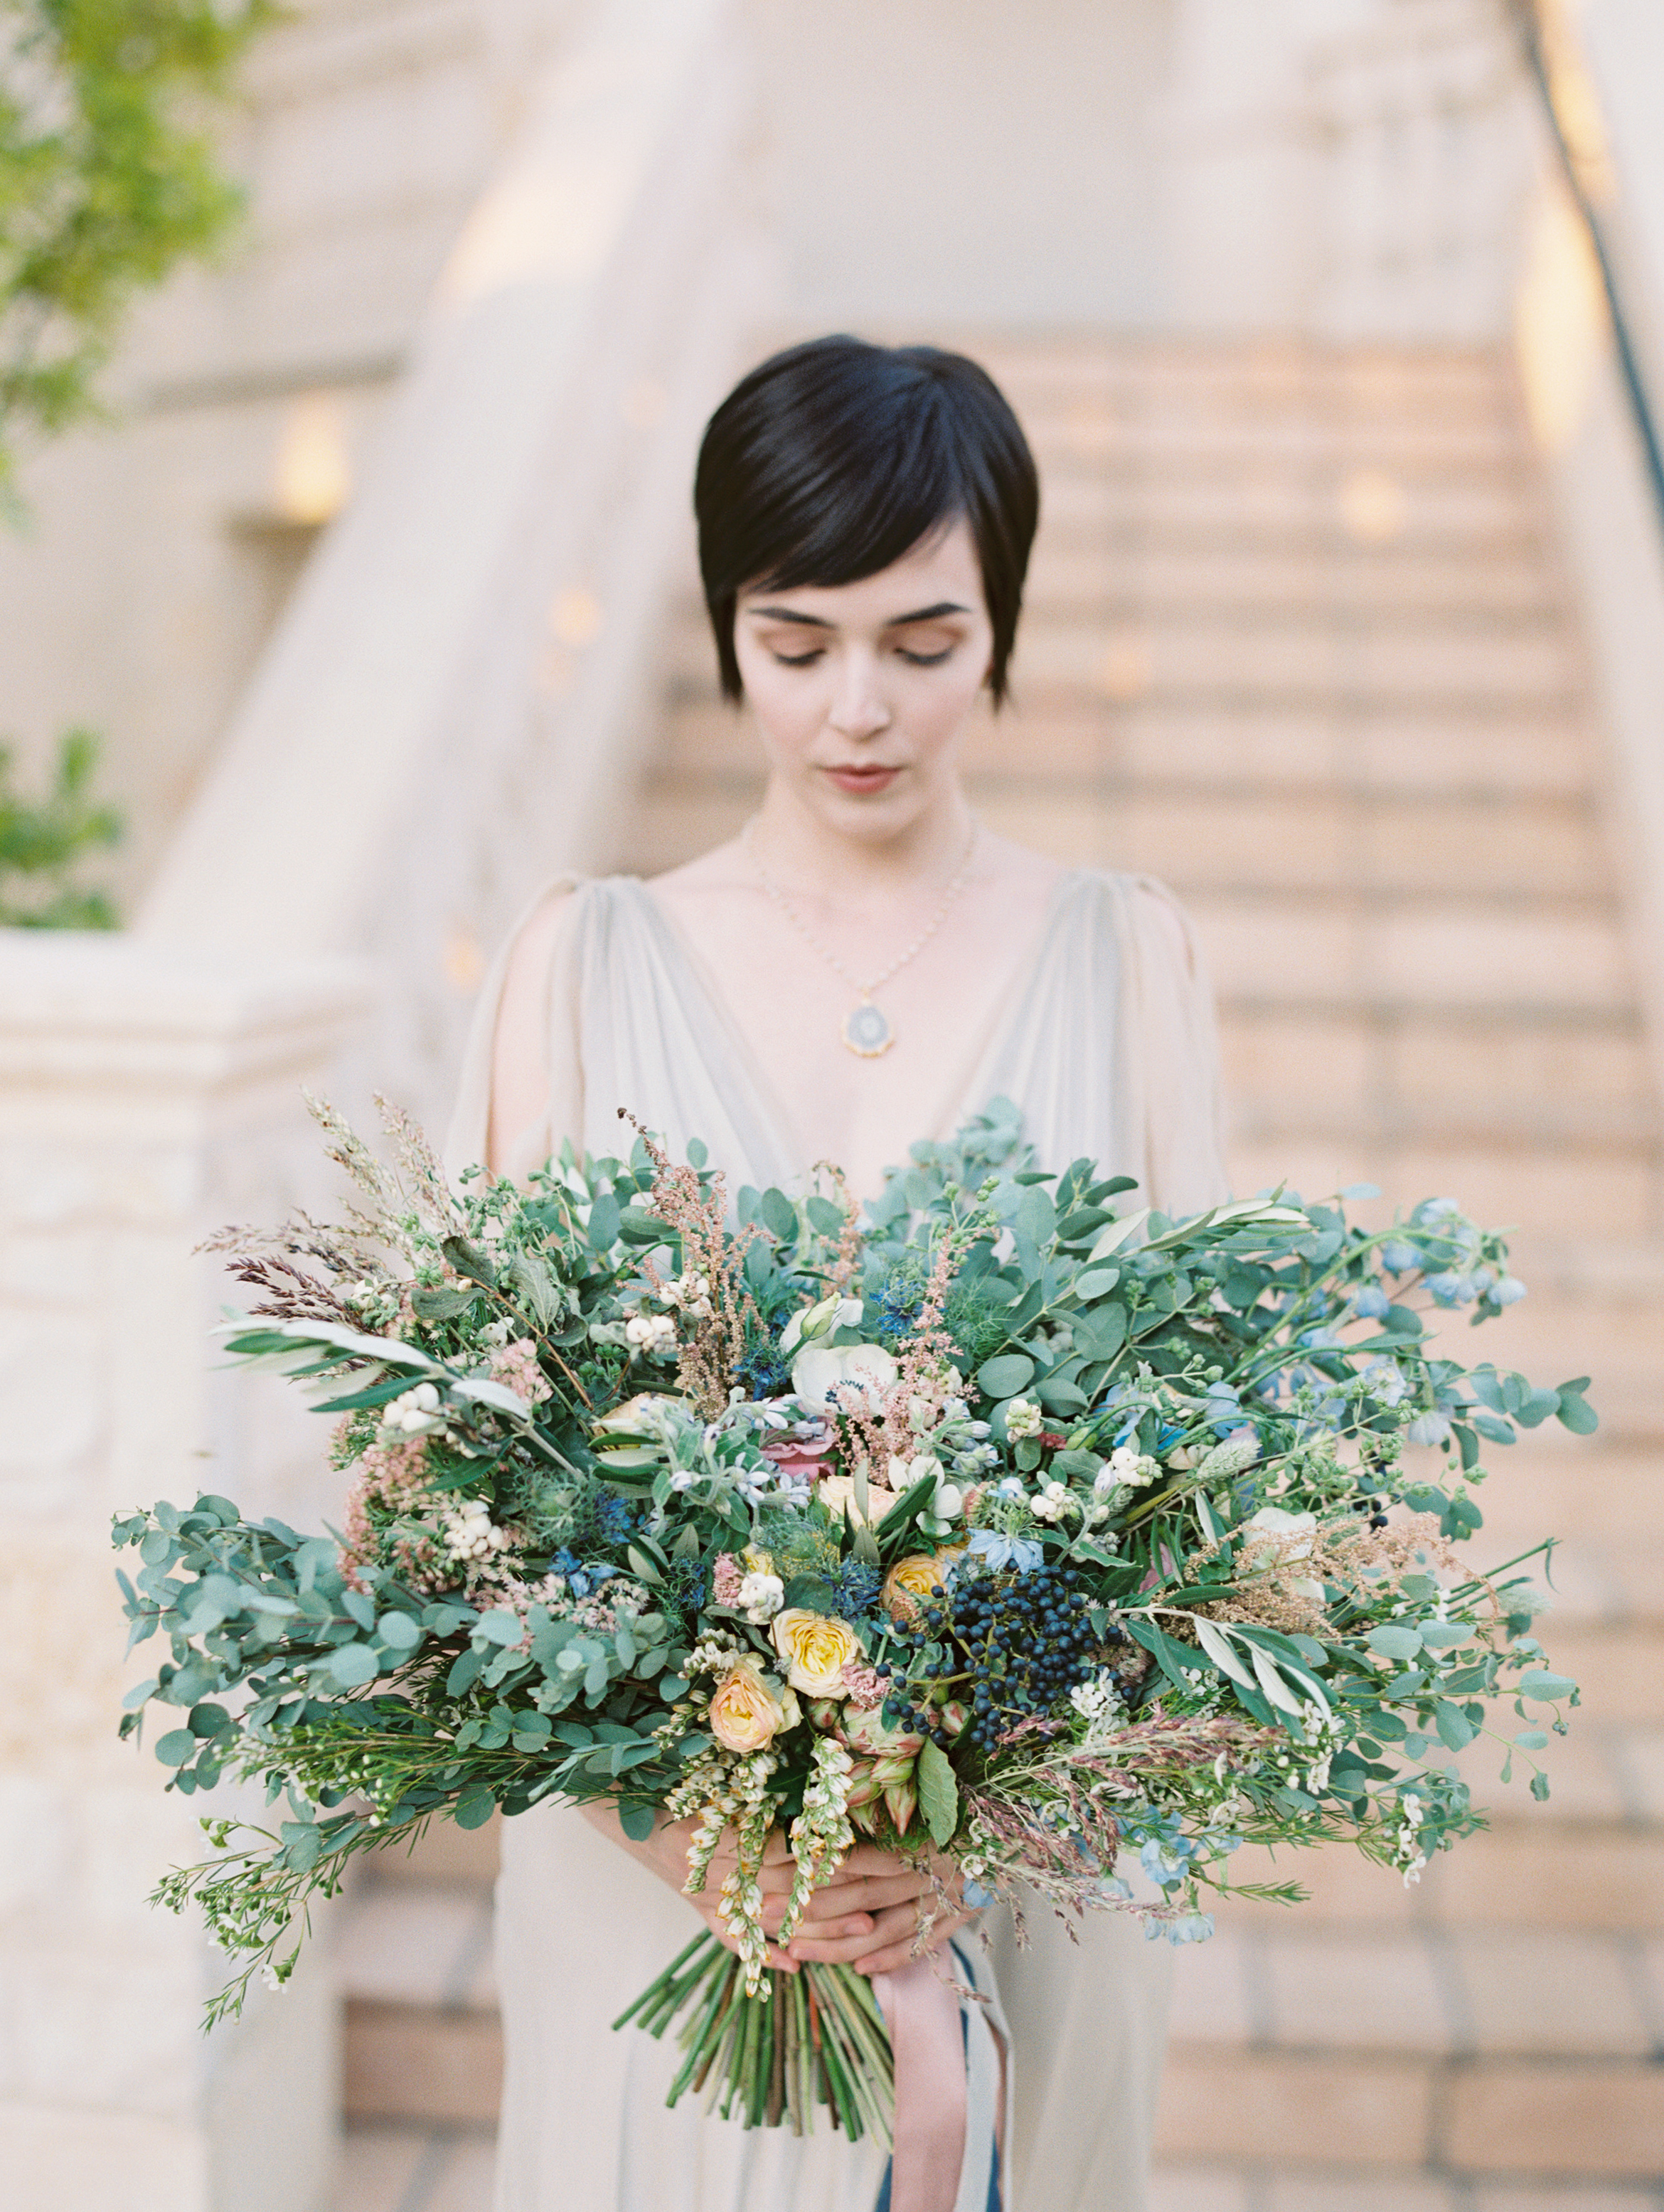 Traditional Division of Wedding Expenses   Wedding Budget Tips   Michelle Leo Events   Utah Event Planner and Designer   D'Arcy Benincosa Photography